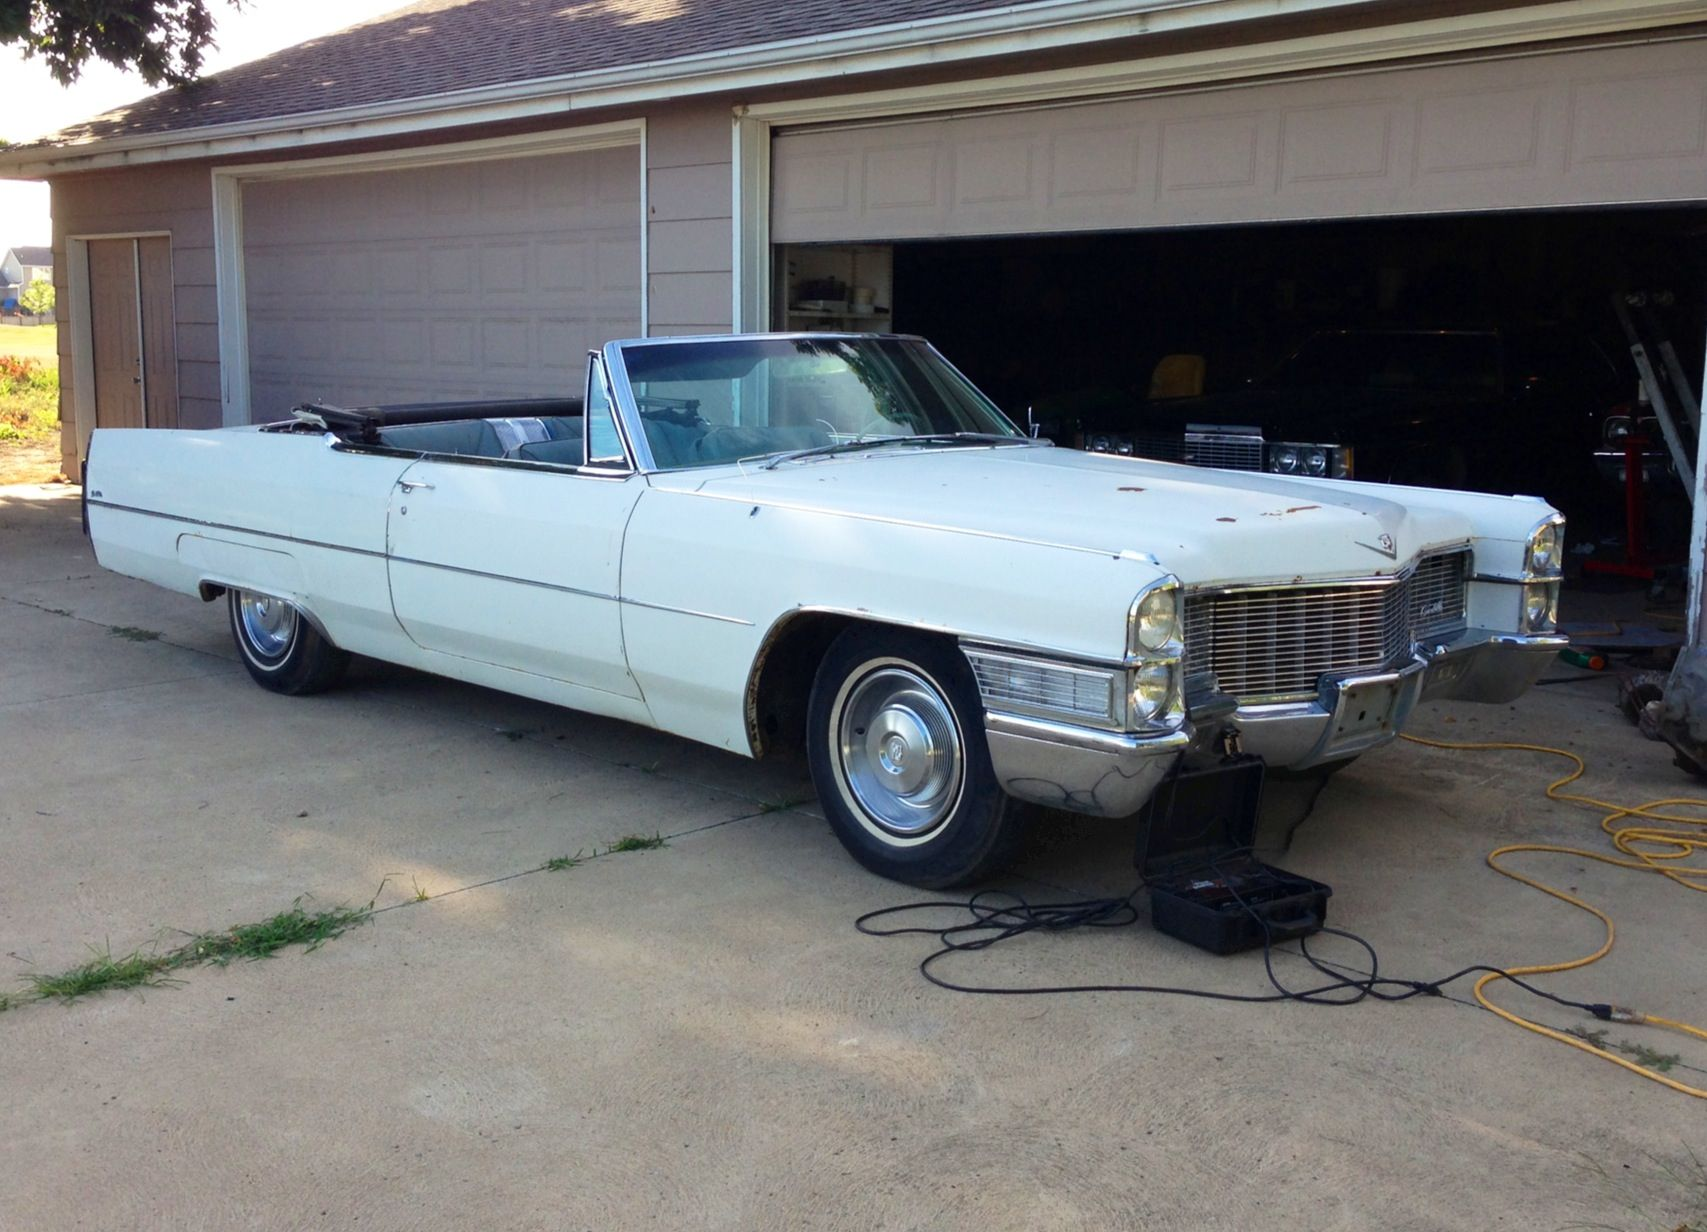 1965 Cadillac Deville Convertible 429 Engine For Sale Cadillac